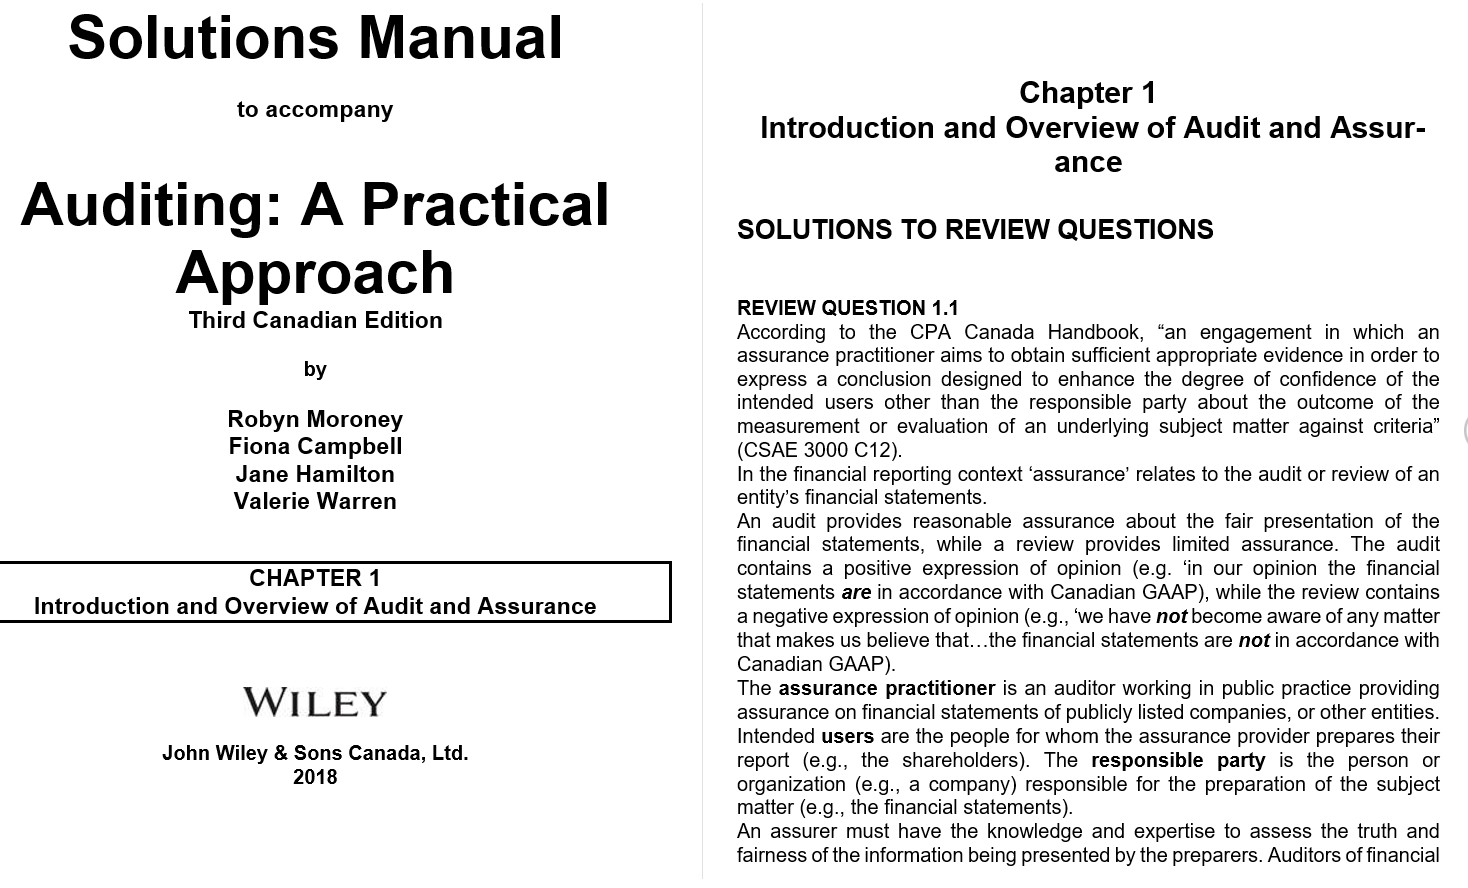 solution manual for Auditing: A Practical Approach 3rd Canadian Edition的图片 3